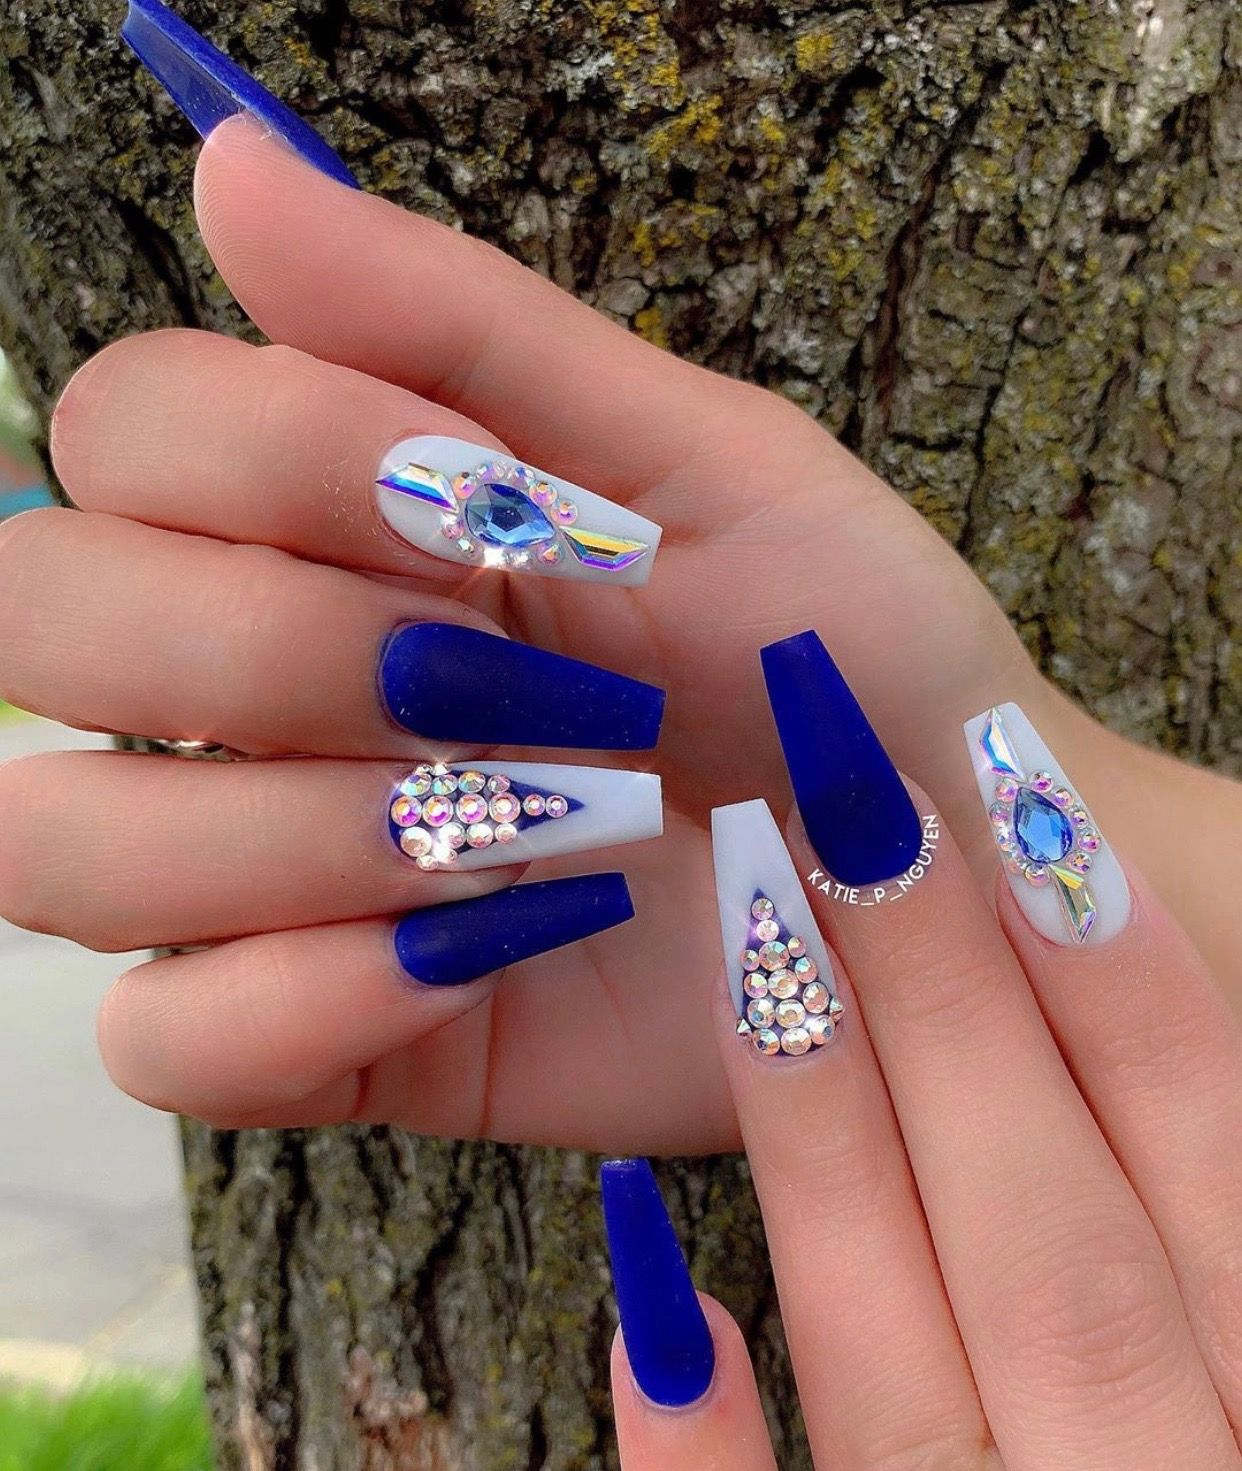 Pin by Raquelle Marie on Nails | Shiny nails, White nails